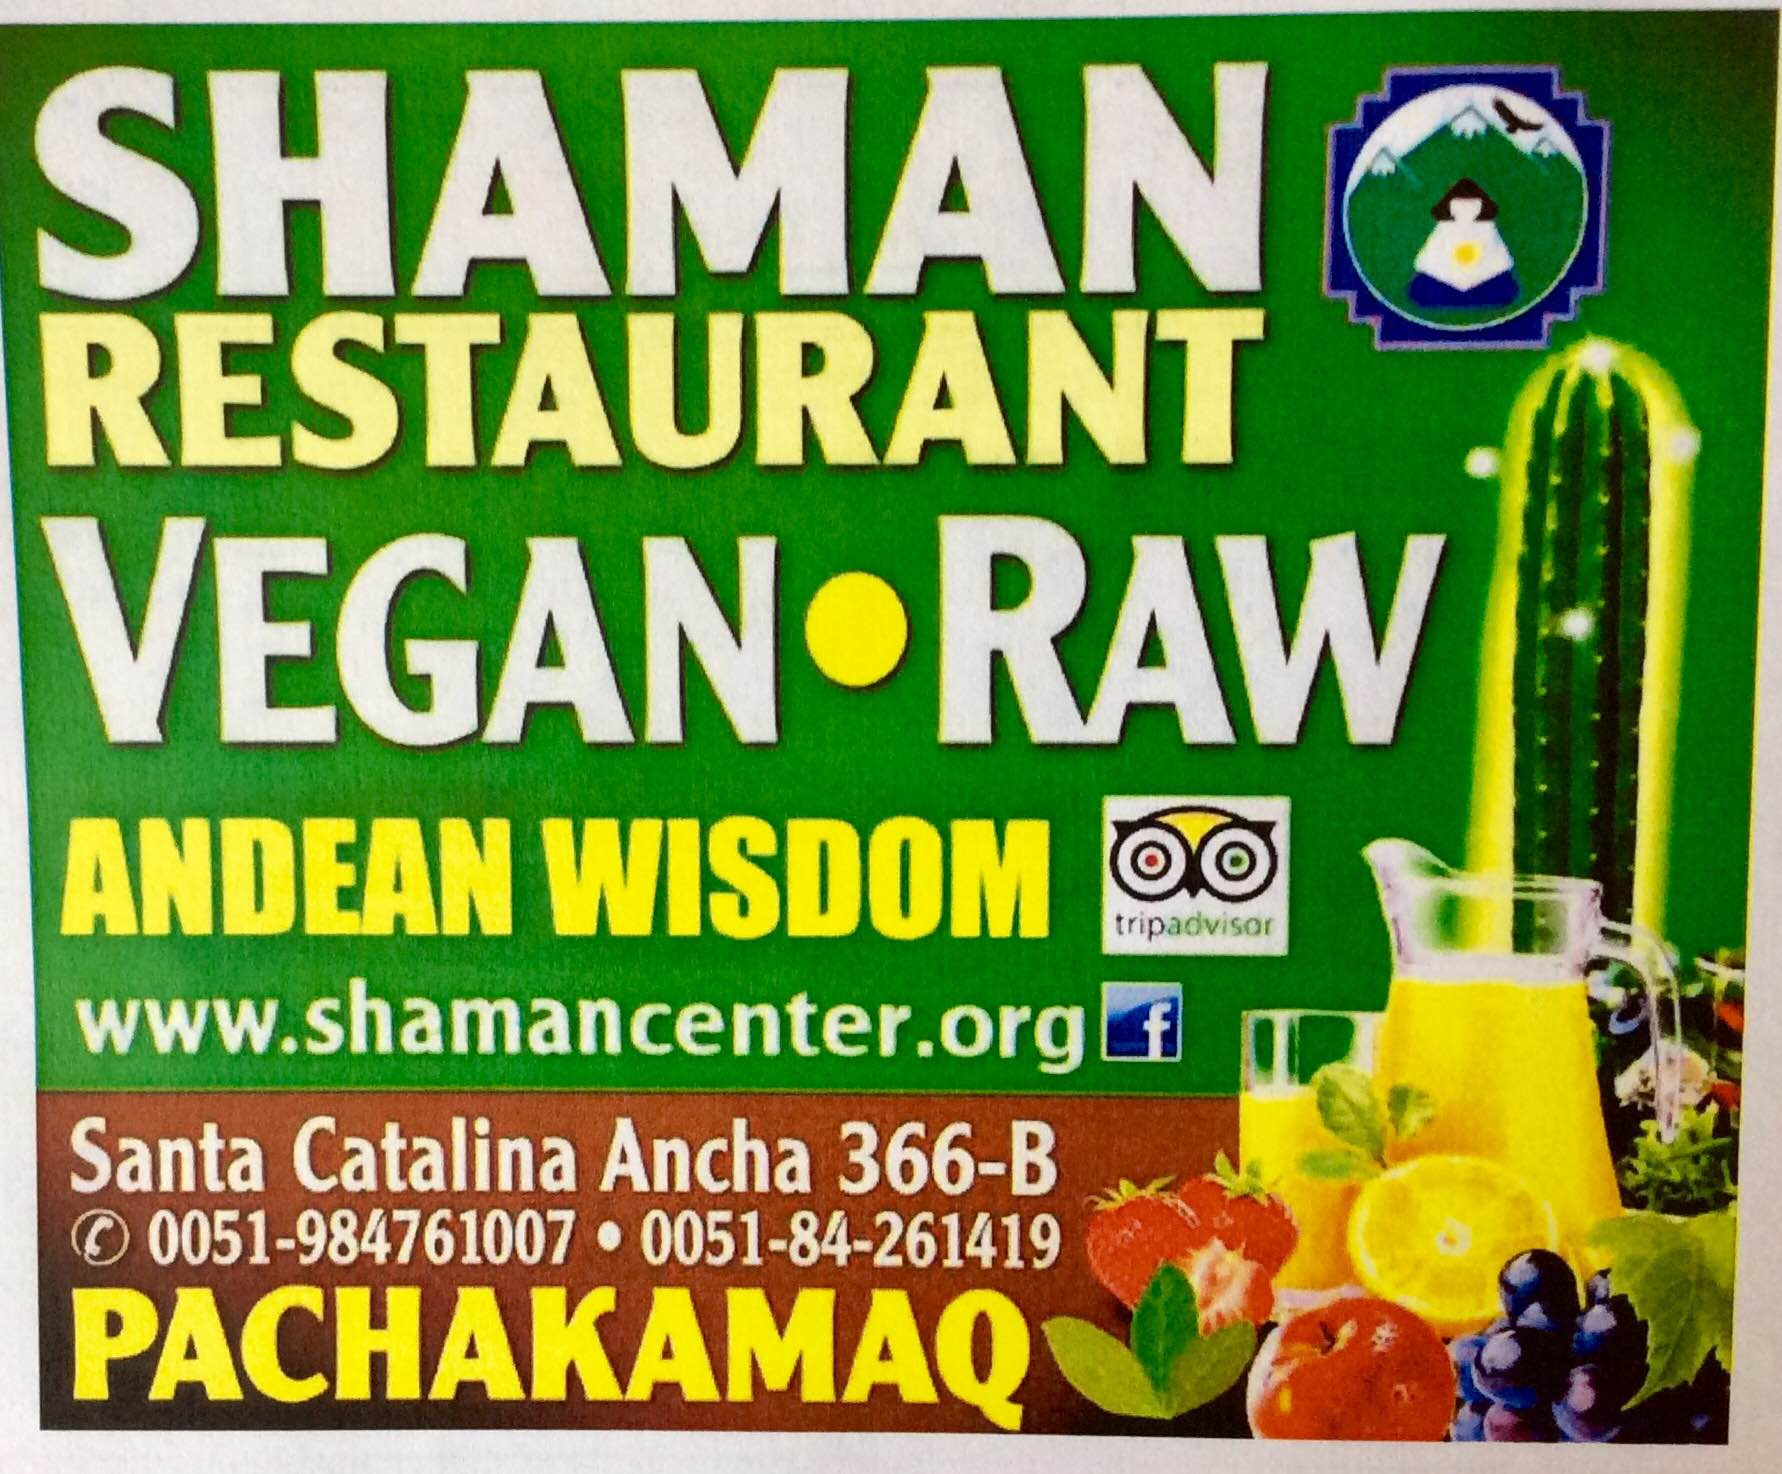 Shaman Restaurant Vegan Raw